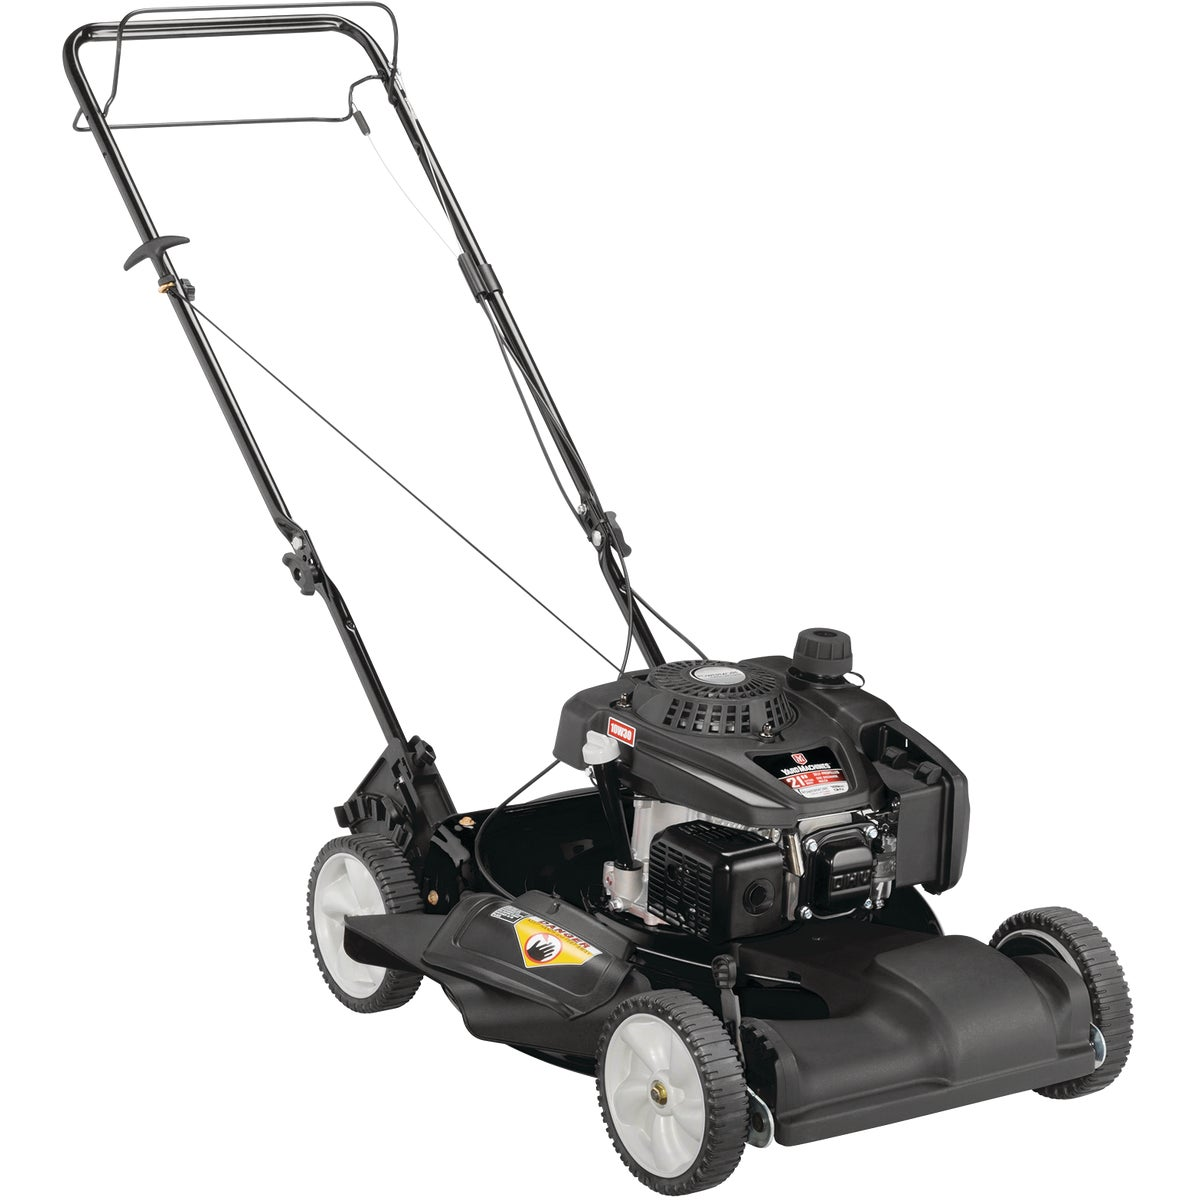 "21"" SELF PROPELLED MOWER - 12A-A03M700 by M T D Products"